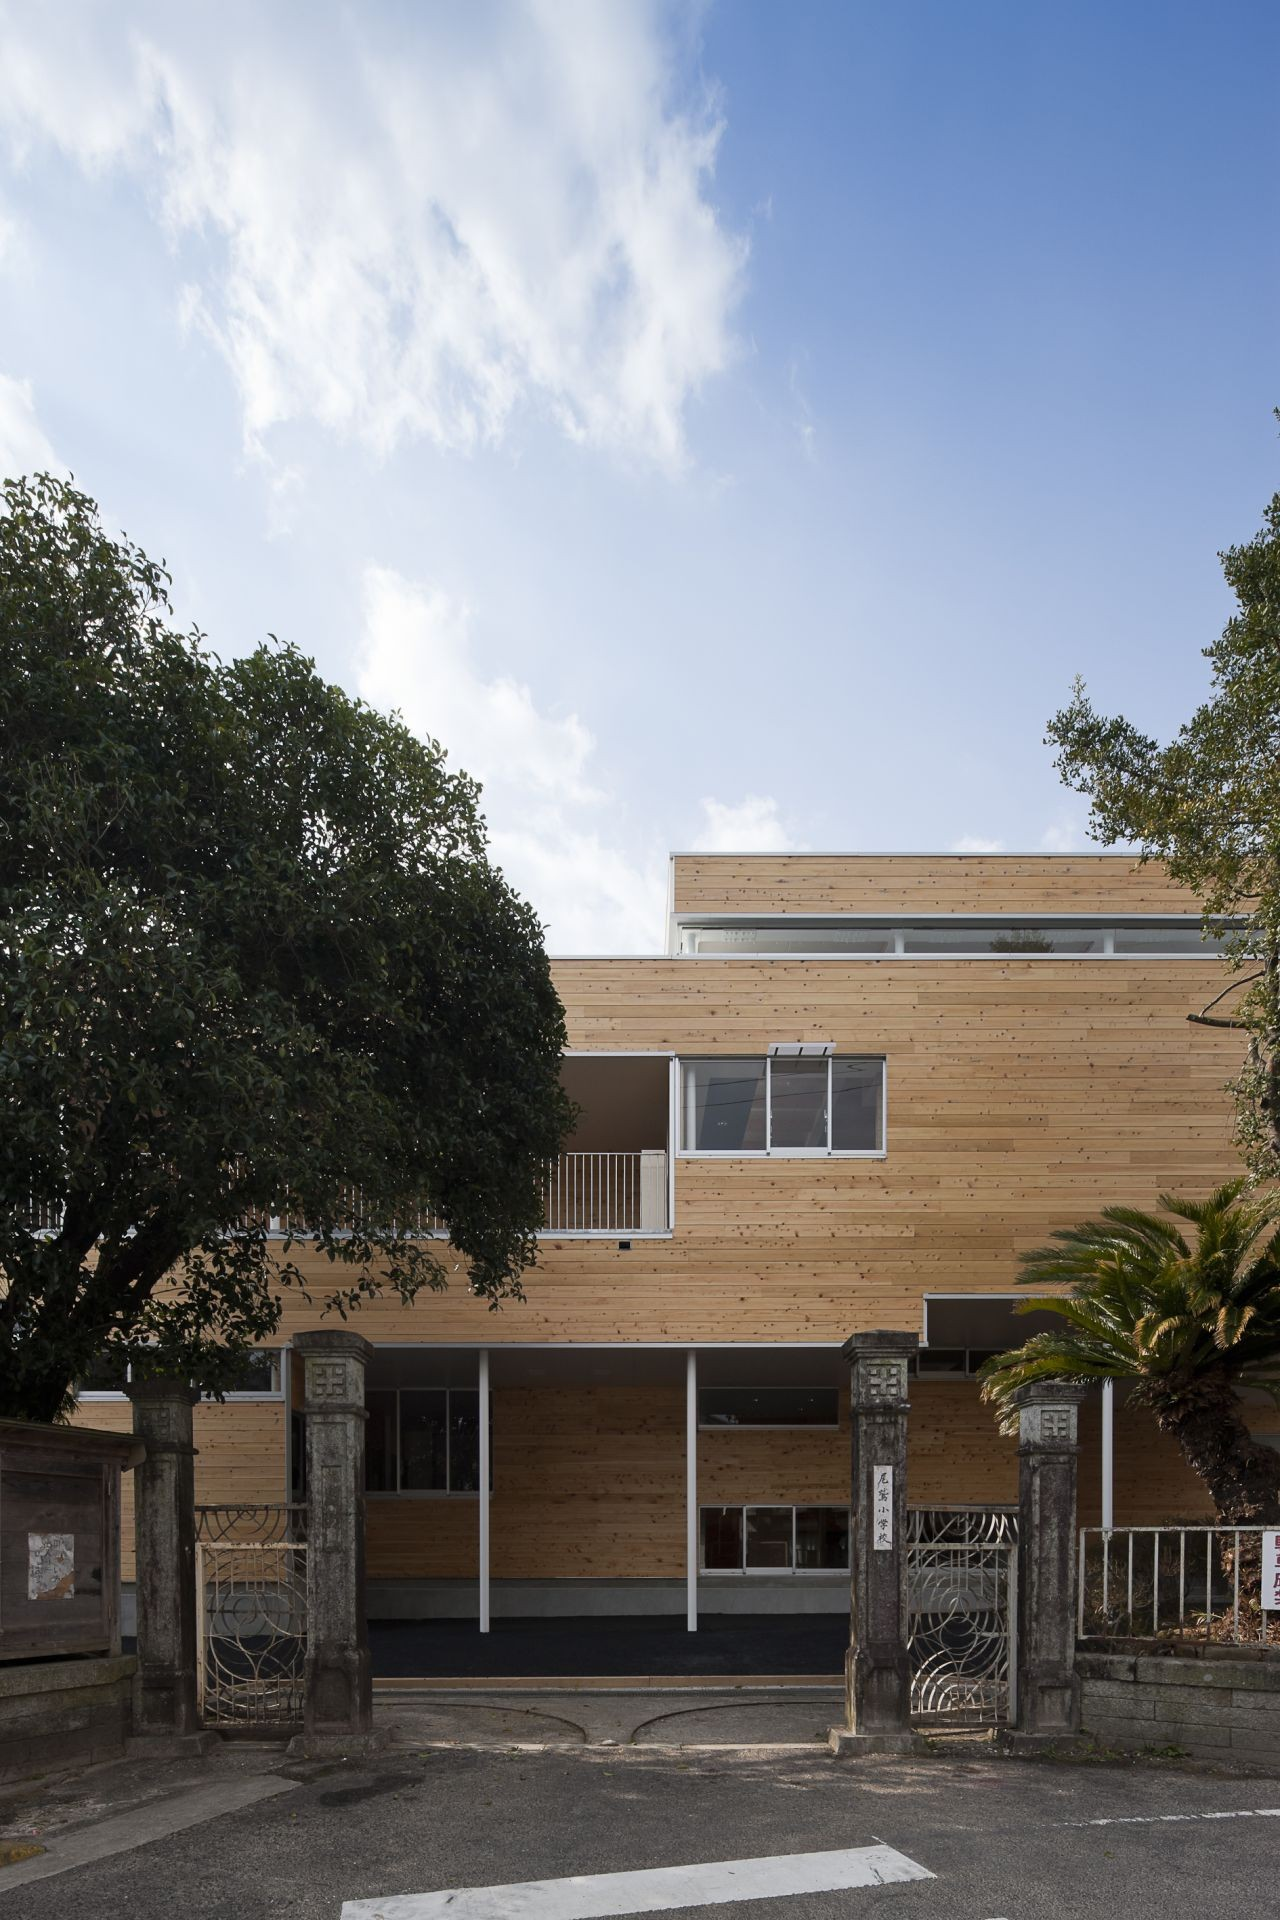 Owase Elementary School / C+A Coelacanth and Associates